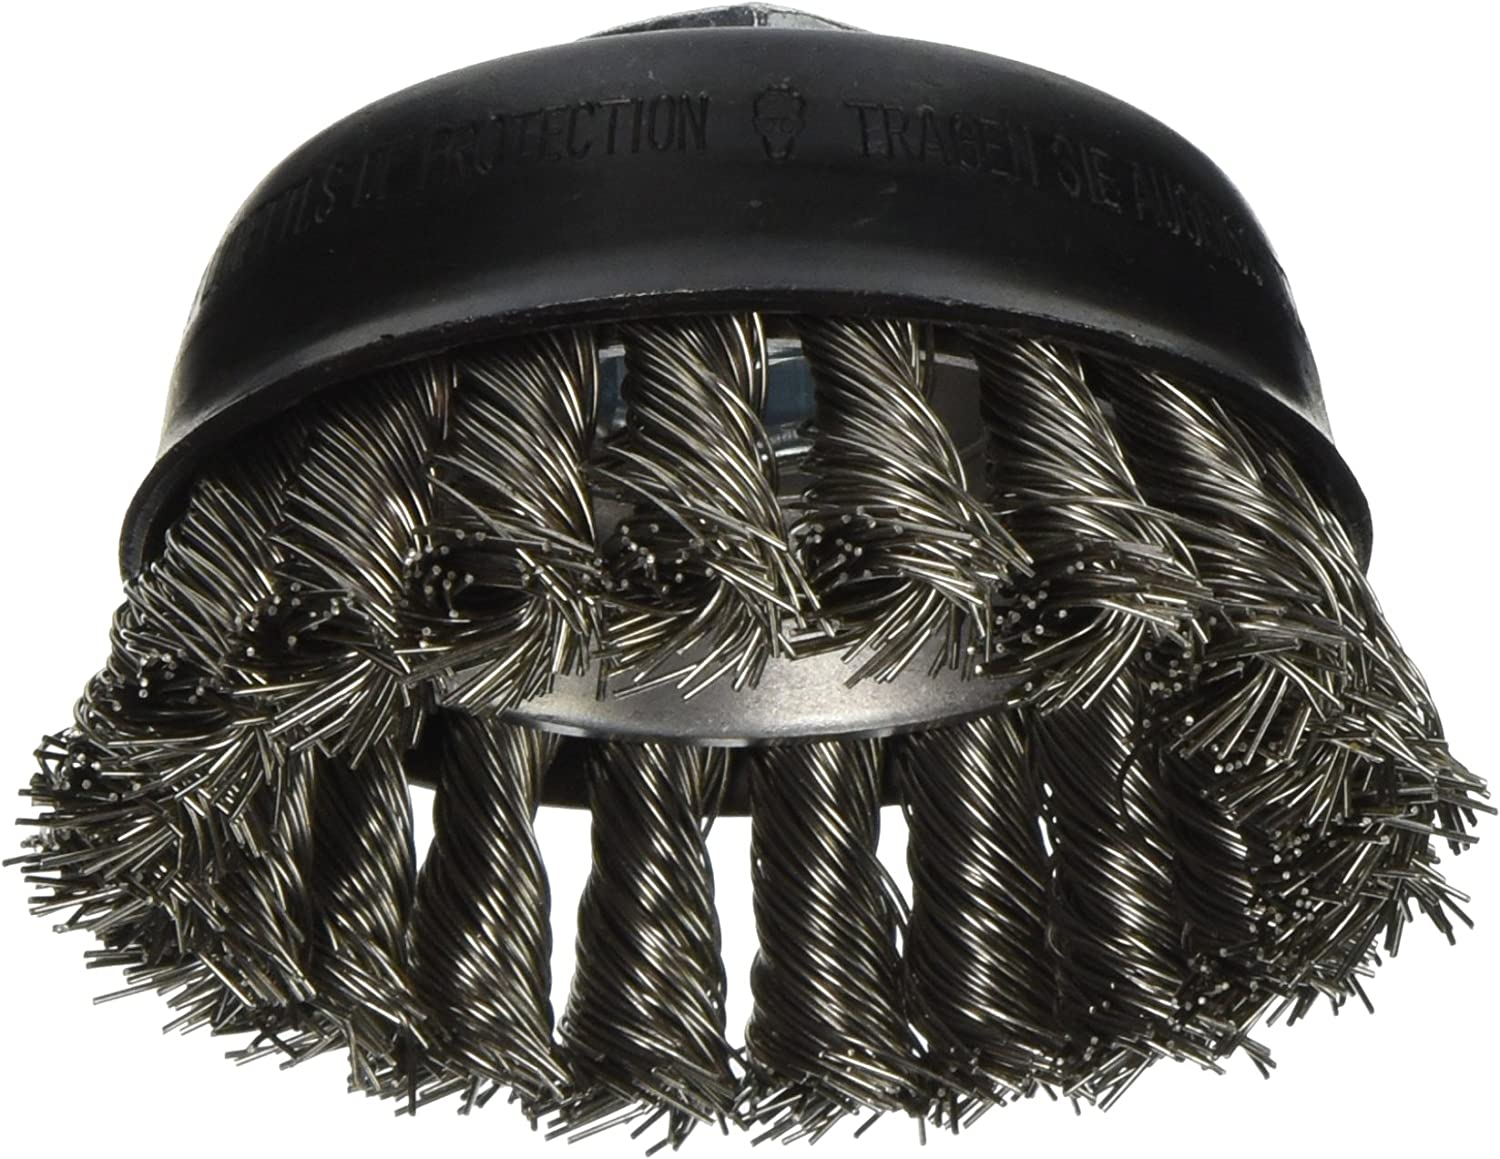 Bosch WB504 3-Inch Cup Brush, Knotted, Stainless Steel, 5/8-Inch x 11 Thread Arbor